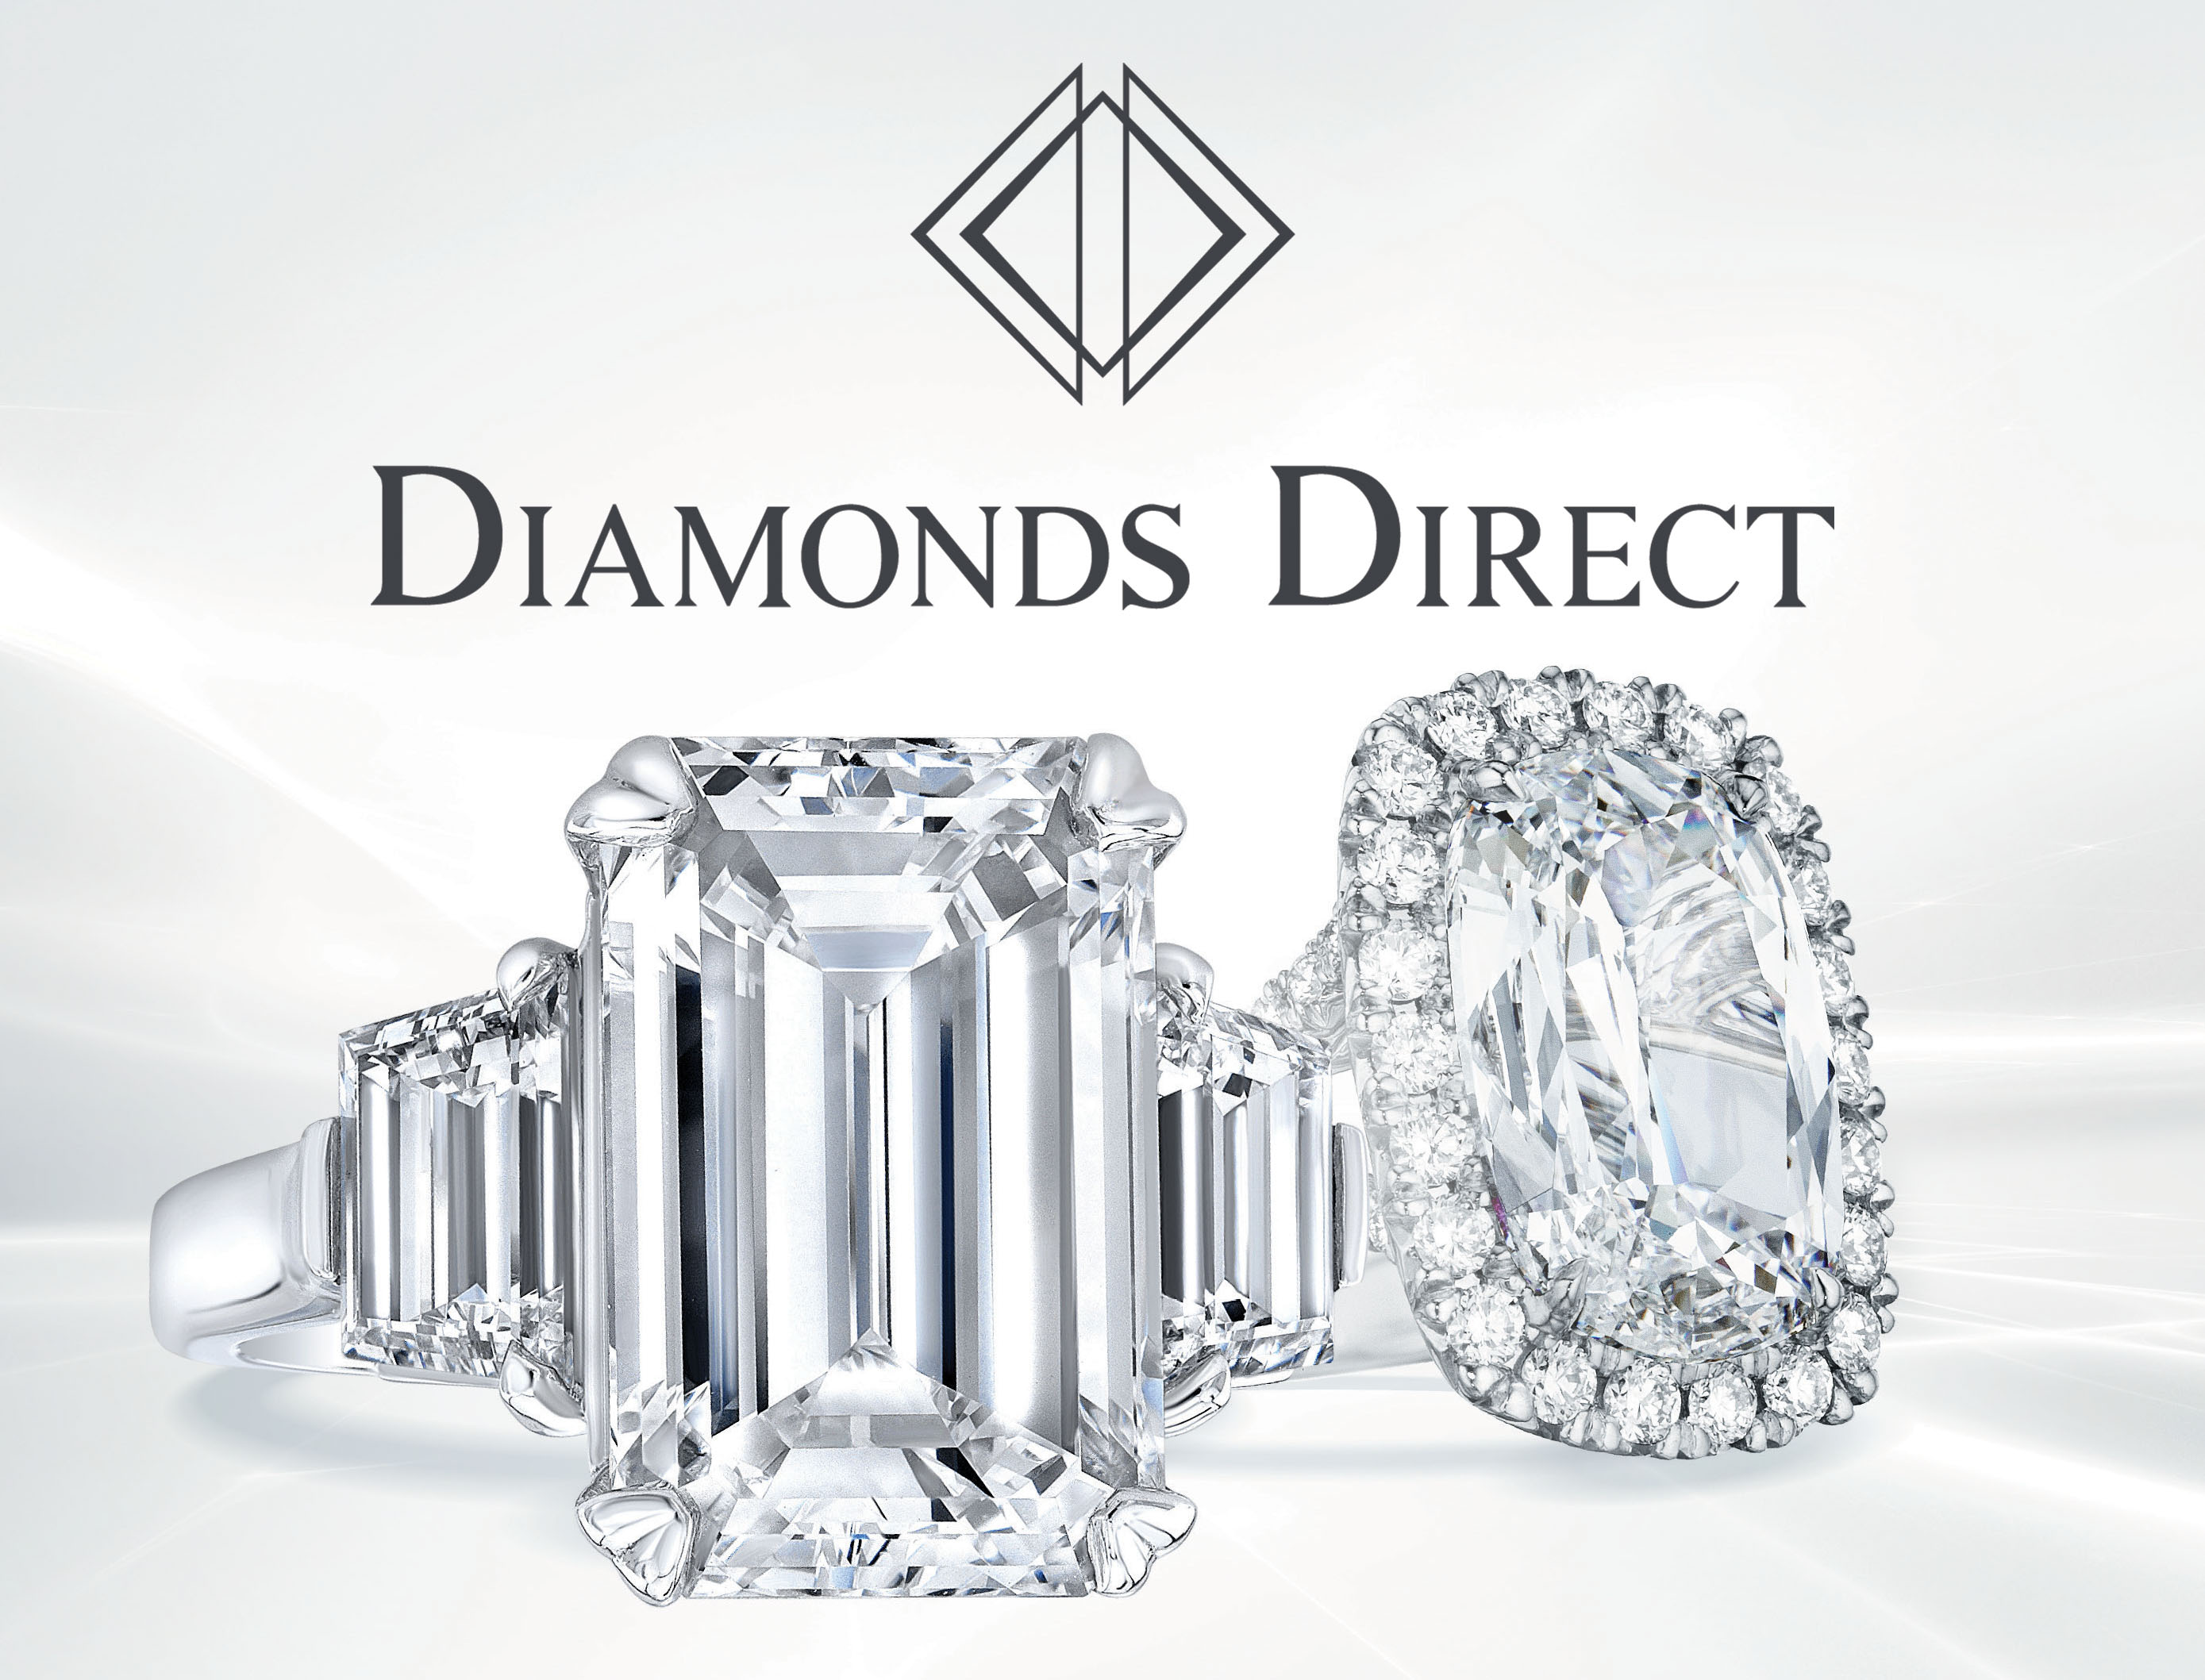 DiamondsDirect